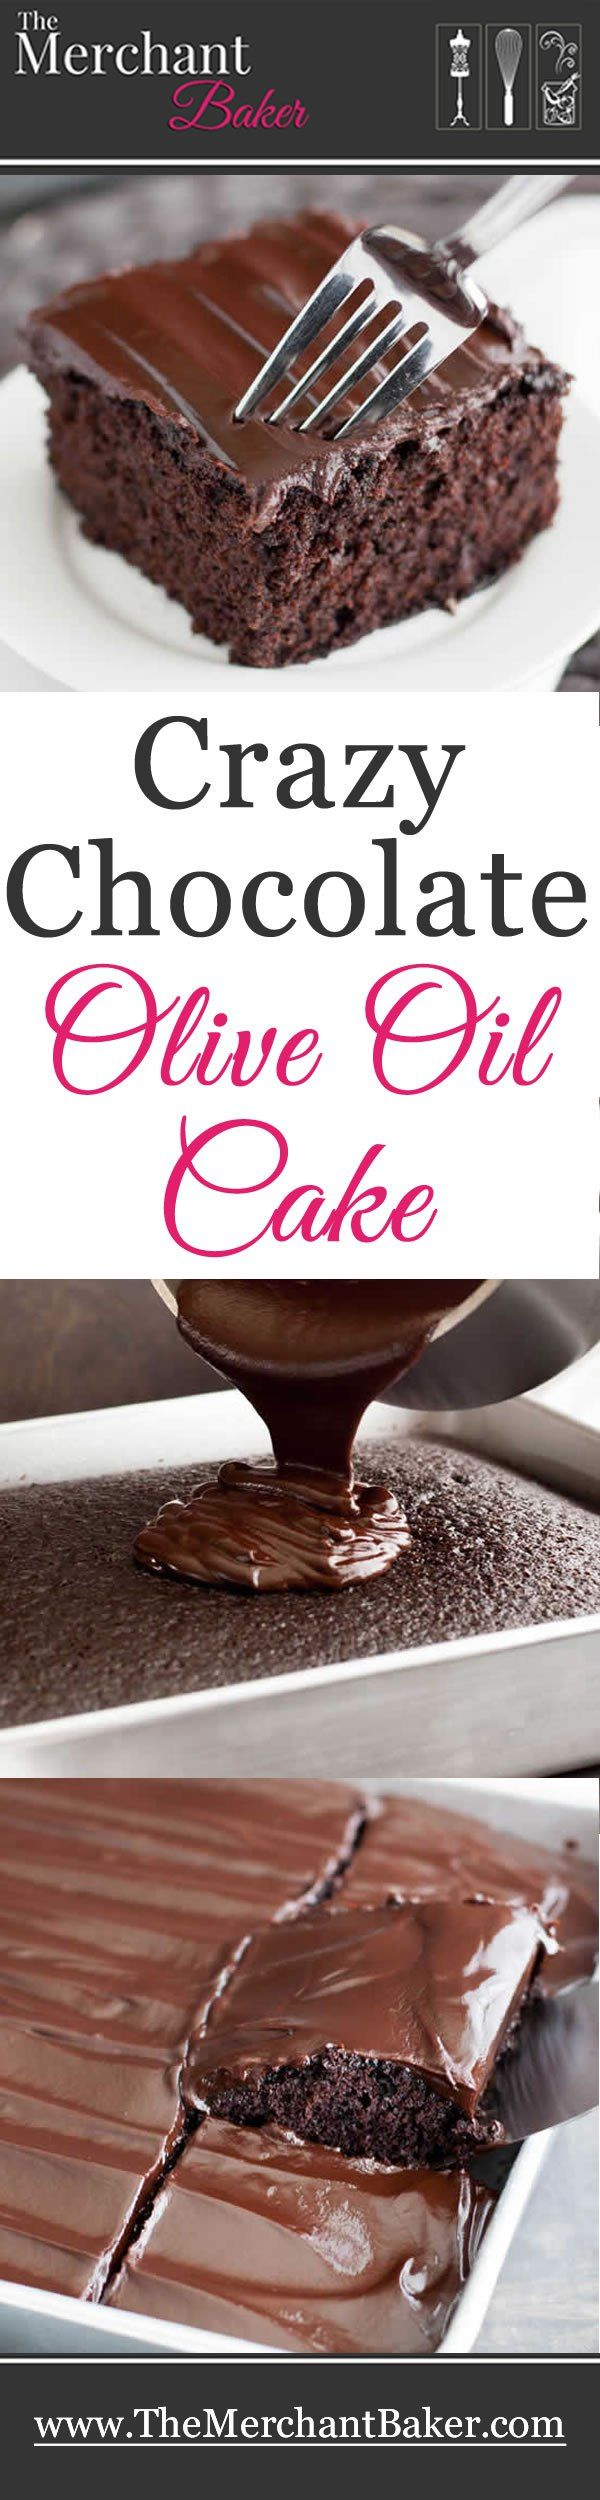 Crazy Chocolate Olive Oil Cake. Use a bowl or just mix it up right in the baking pan! Vegan friendly on it's own or pour on some fudgy ganache for a real treat!